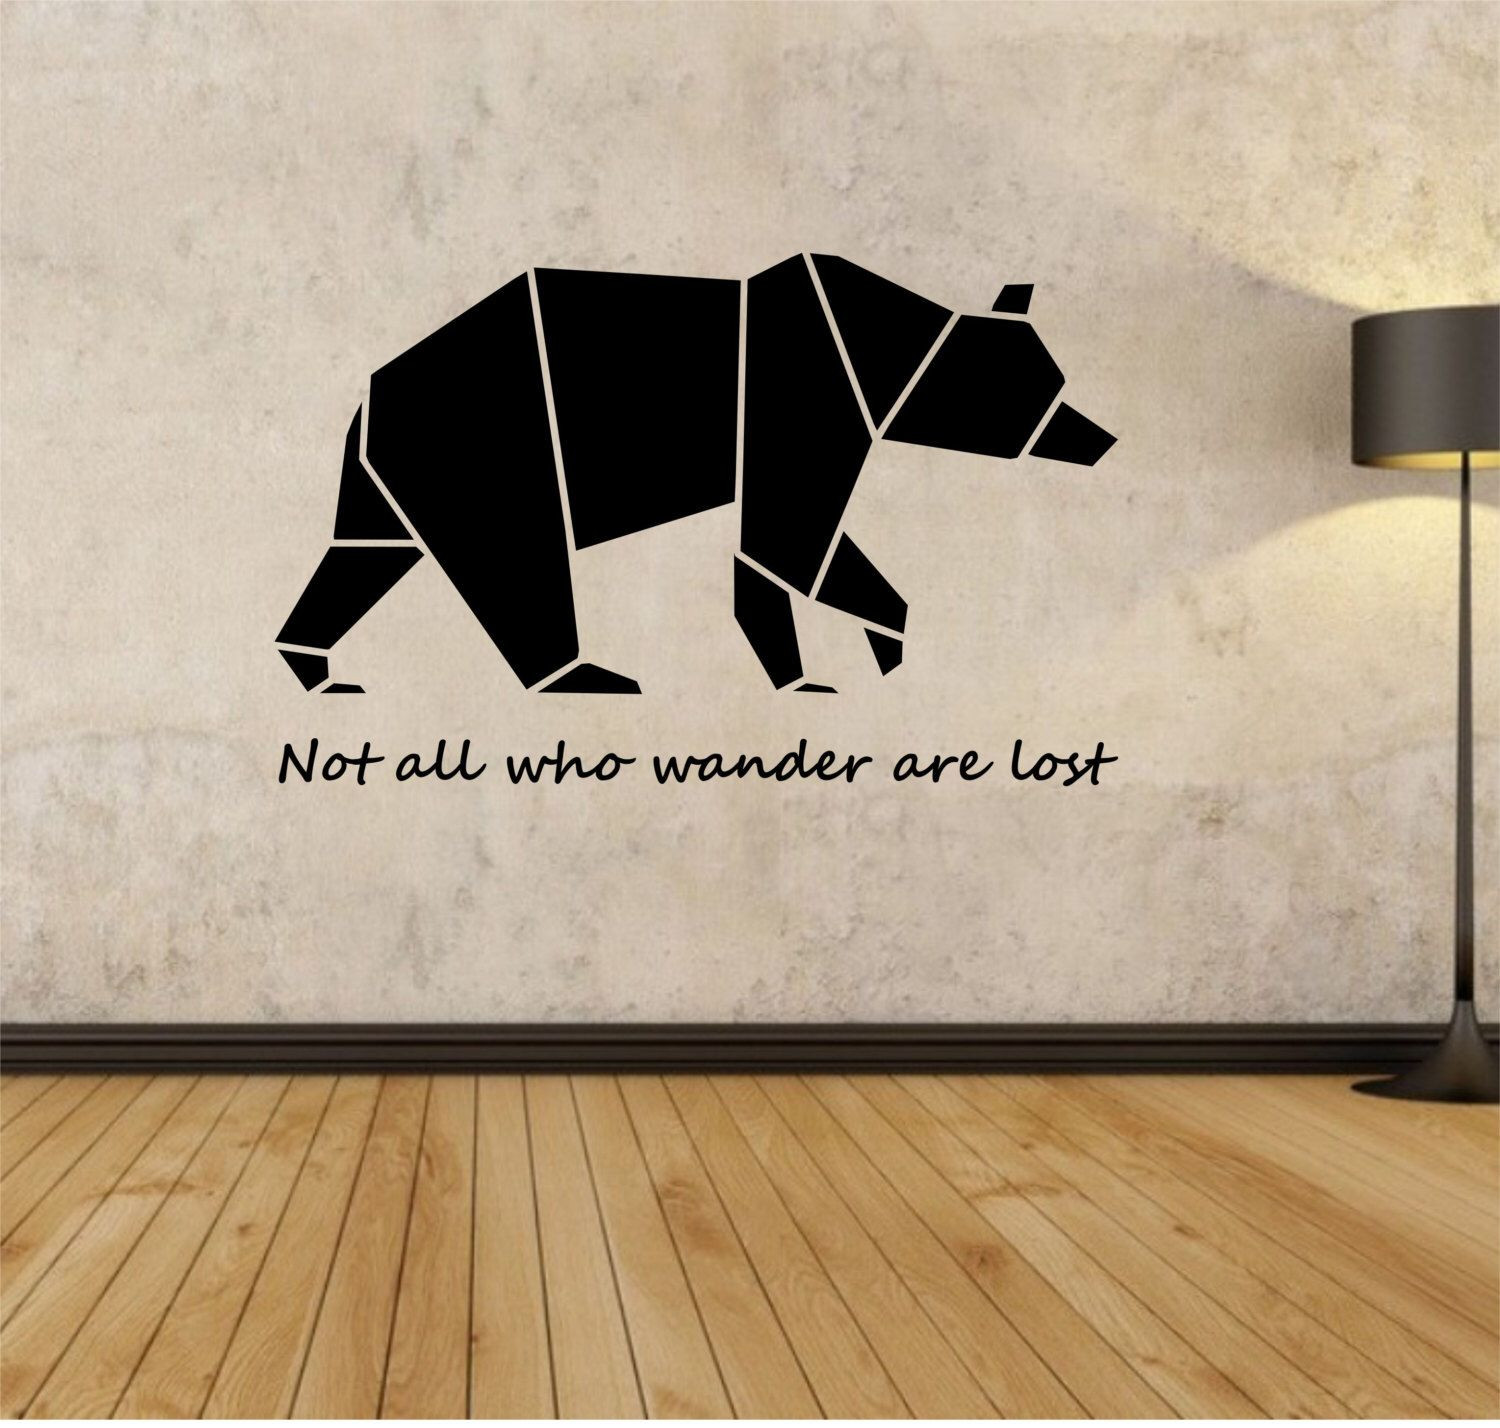 origami bear wall decal not all who wander are lost sticker art decor bedroom design mural. Black Bedroom Furniture Sets. Home Design Ideas